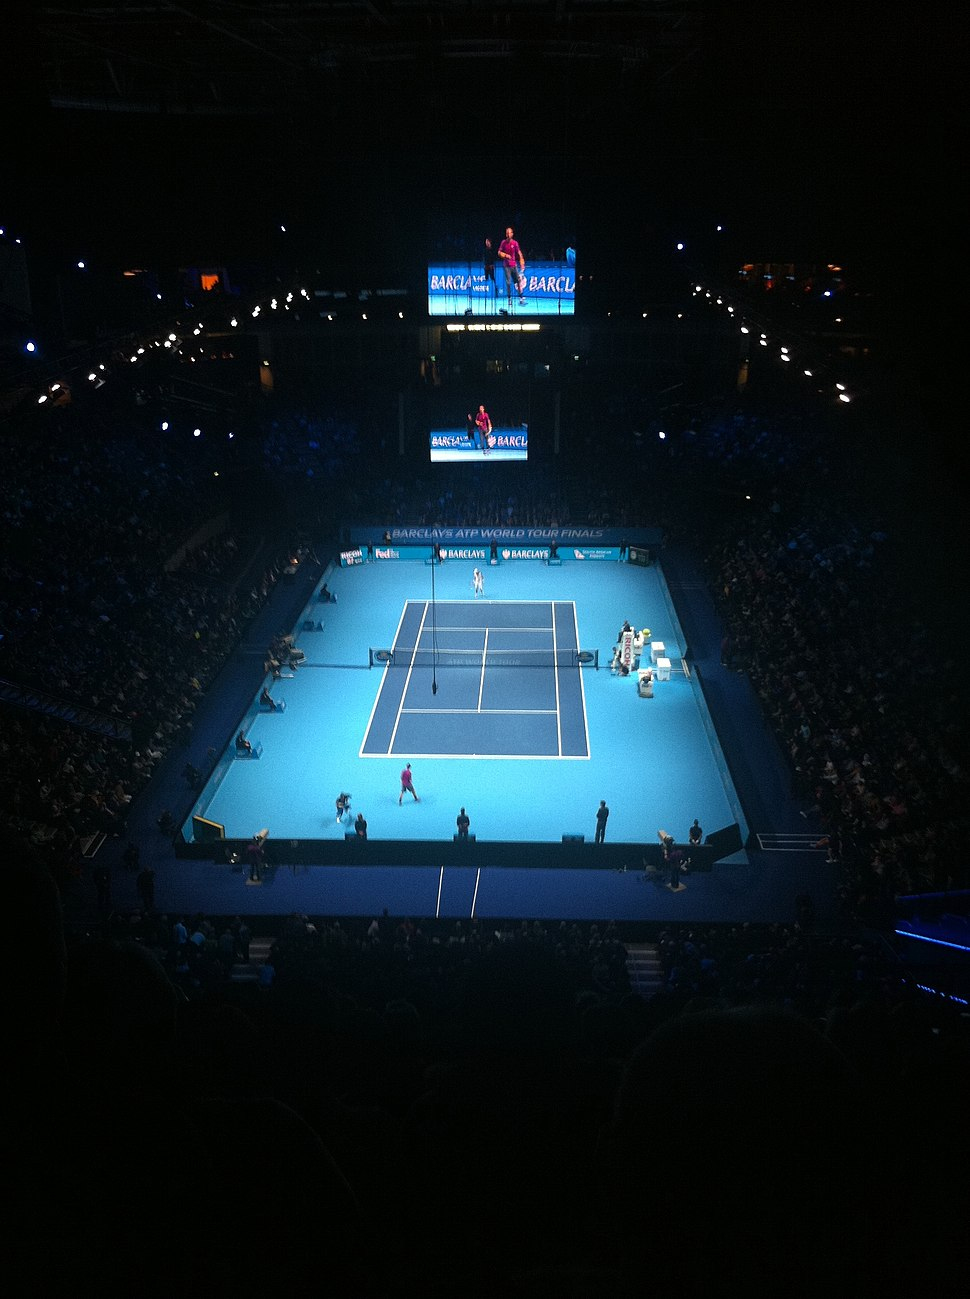 Rafael Nadal - ATP World Tour Finals at the O2